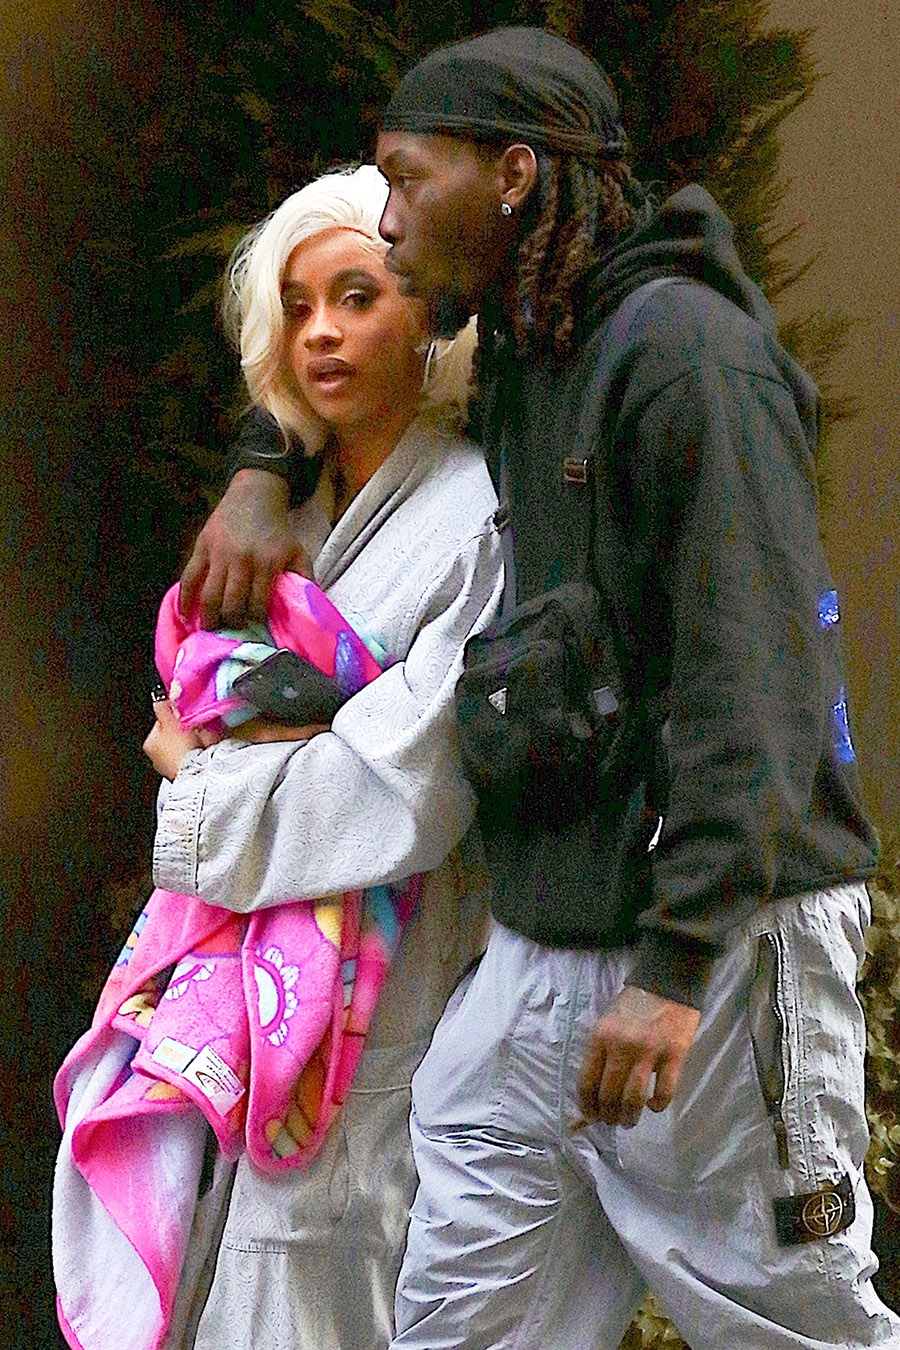 Offset Consoles Wife Cardi B After A Hectic Day Following